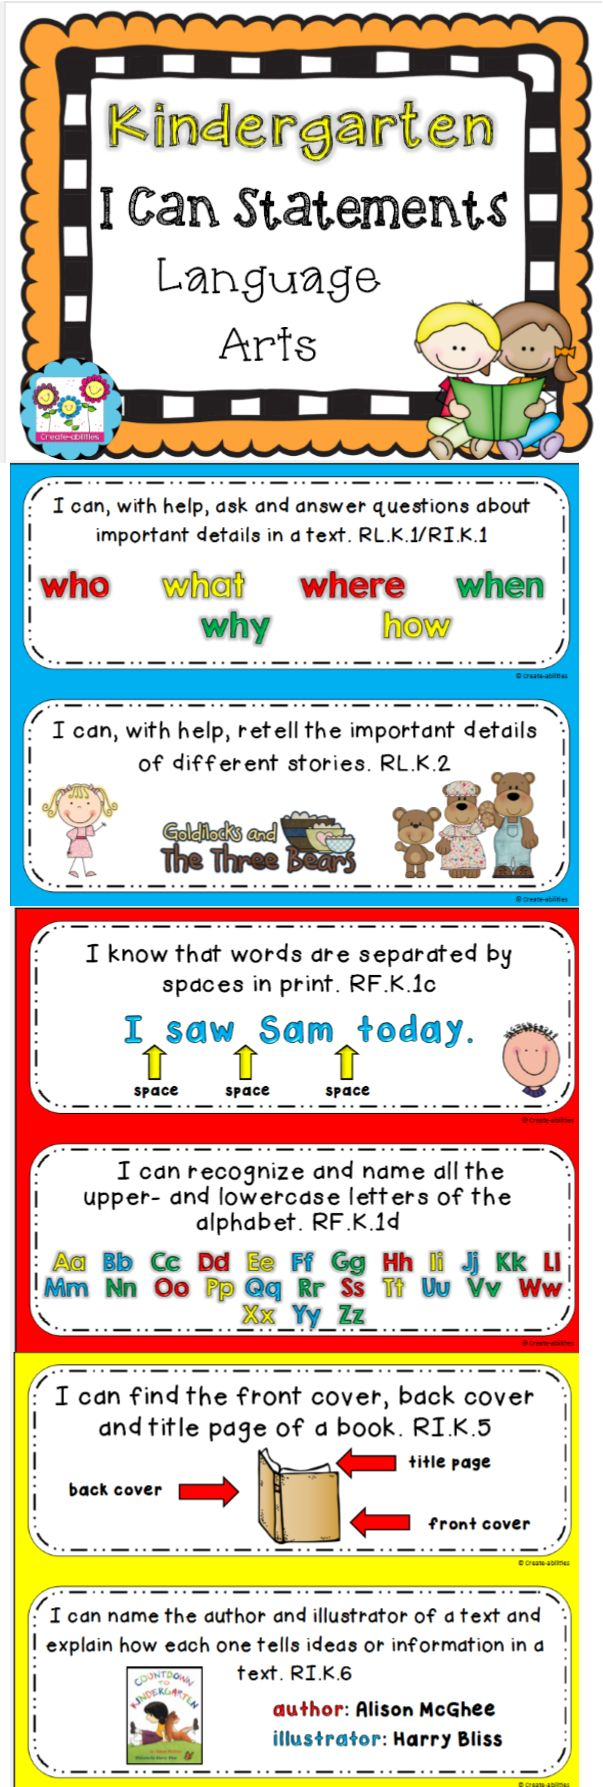 Kindergarten I Can Statements for ELA! Fantastic resource! $  #kindergarten #Icanstatements #commoncore #languagearts